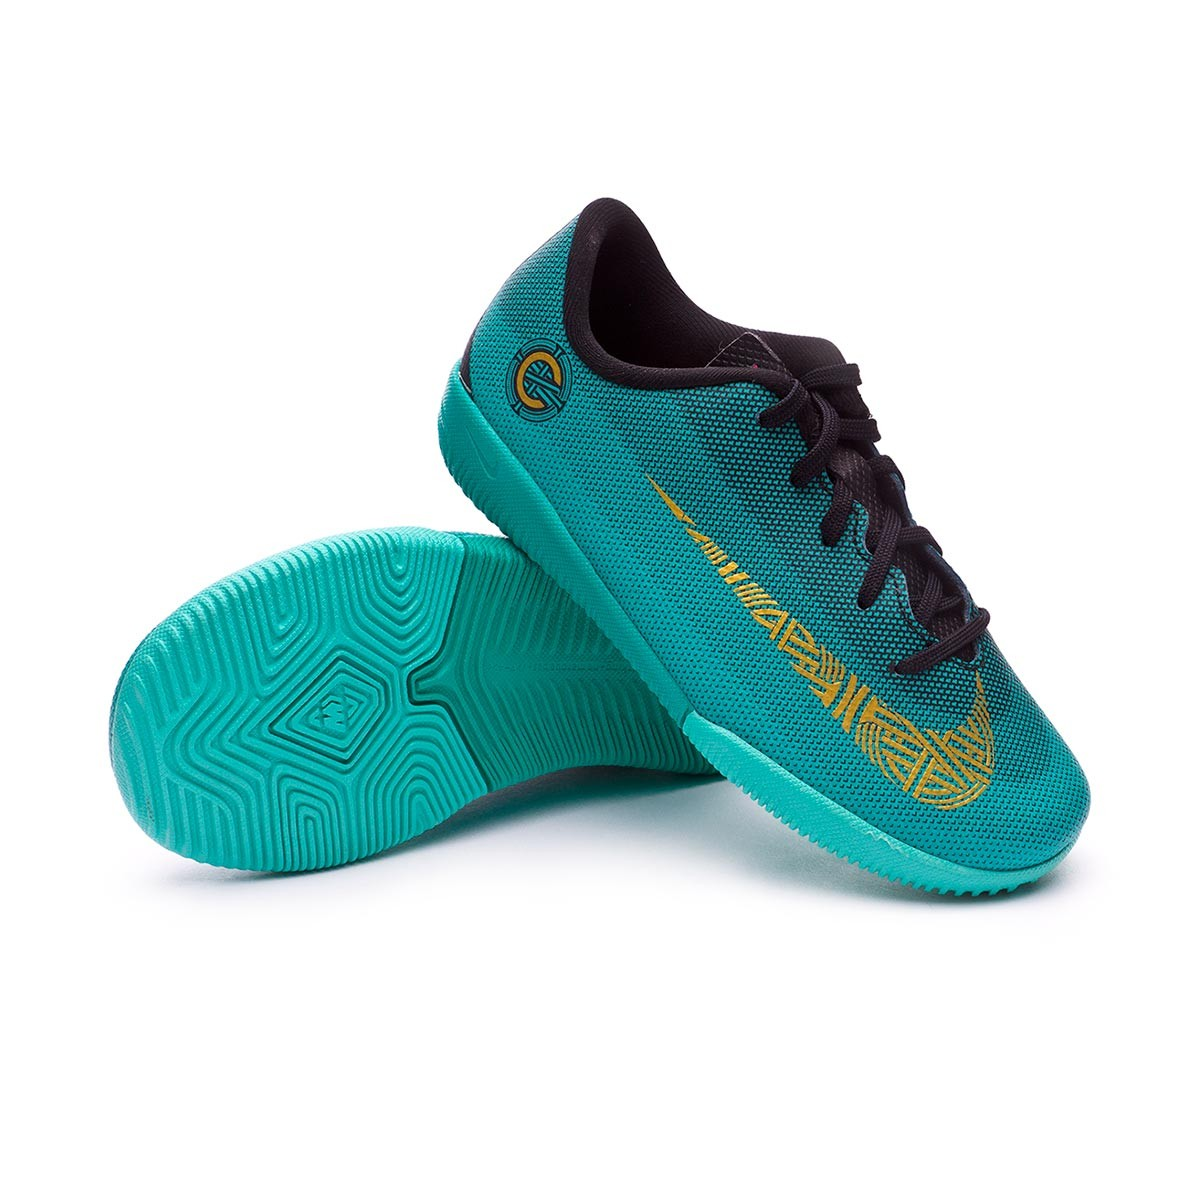 sports shoes d5f9c 8d00c Tenis Nike Mercurial VaporX XII Academy PS CR7 IC Niño Clear jade-Metallic  vivid gold-Black - Tienda de fútbol Fútbol Emotion